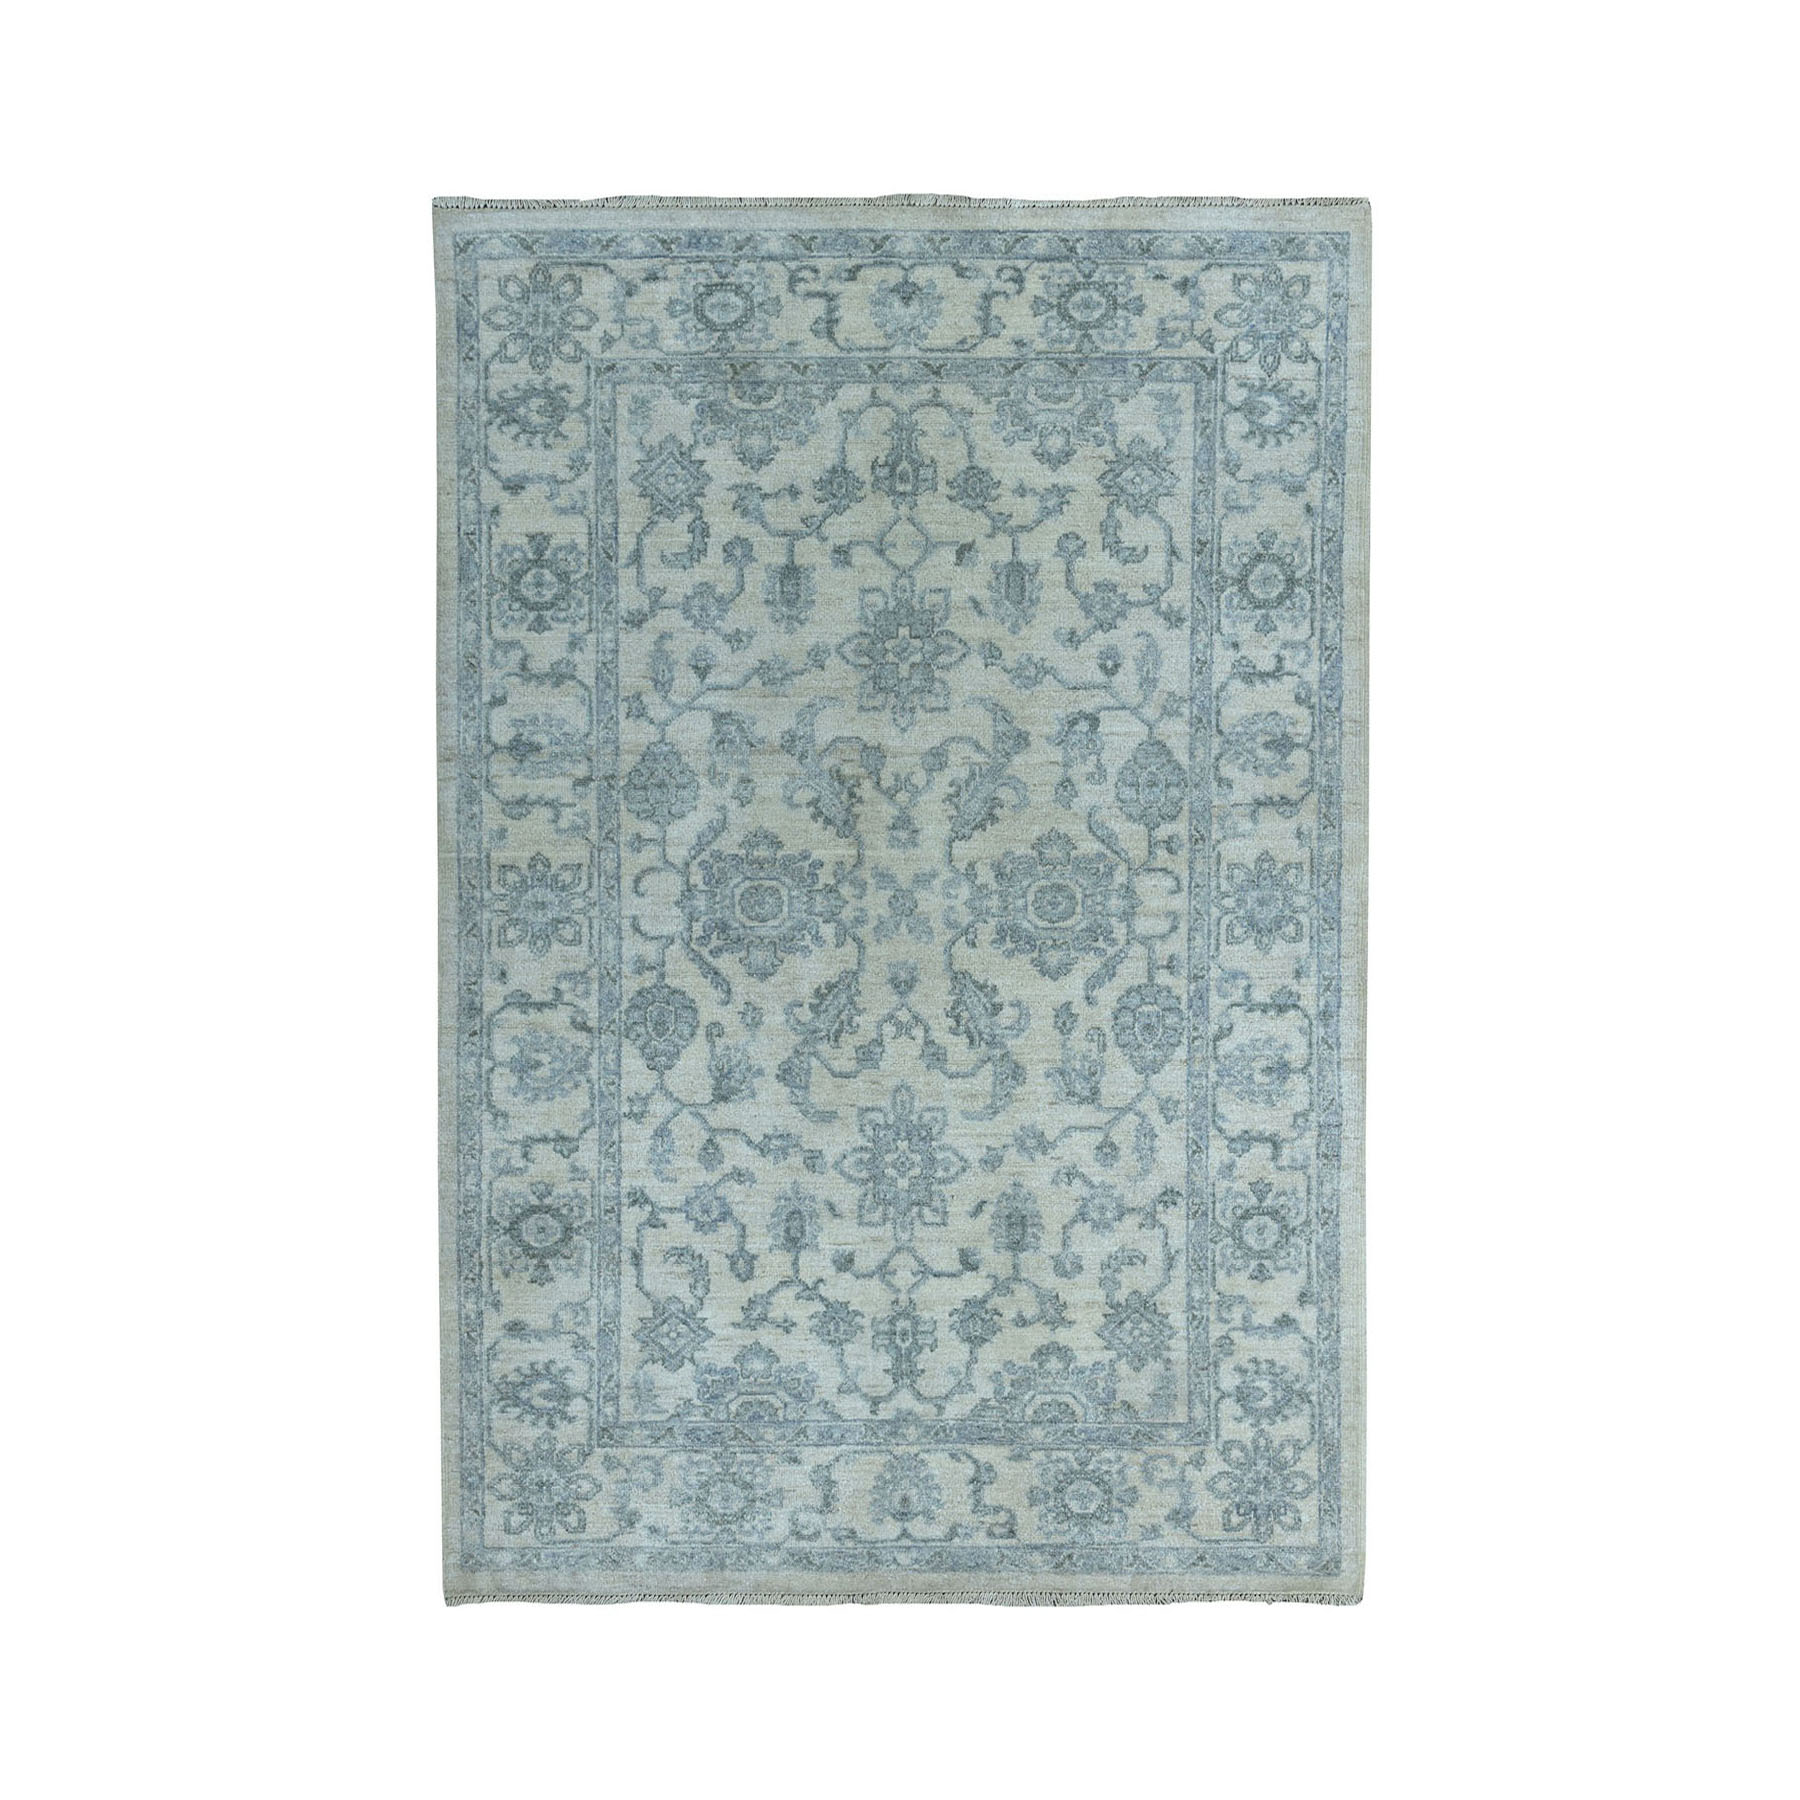 4'X6' White Wash Peshawar Pure Wool Hand-Knotted Oriental Rug moae086a